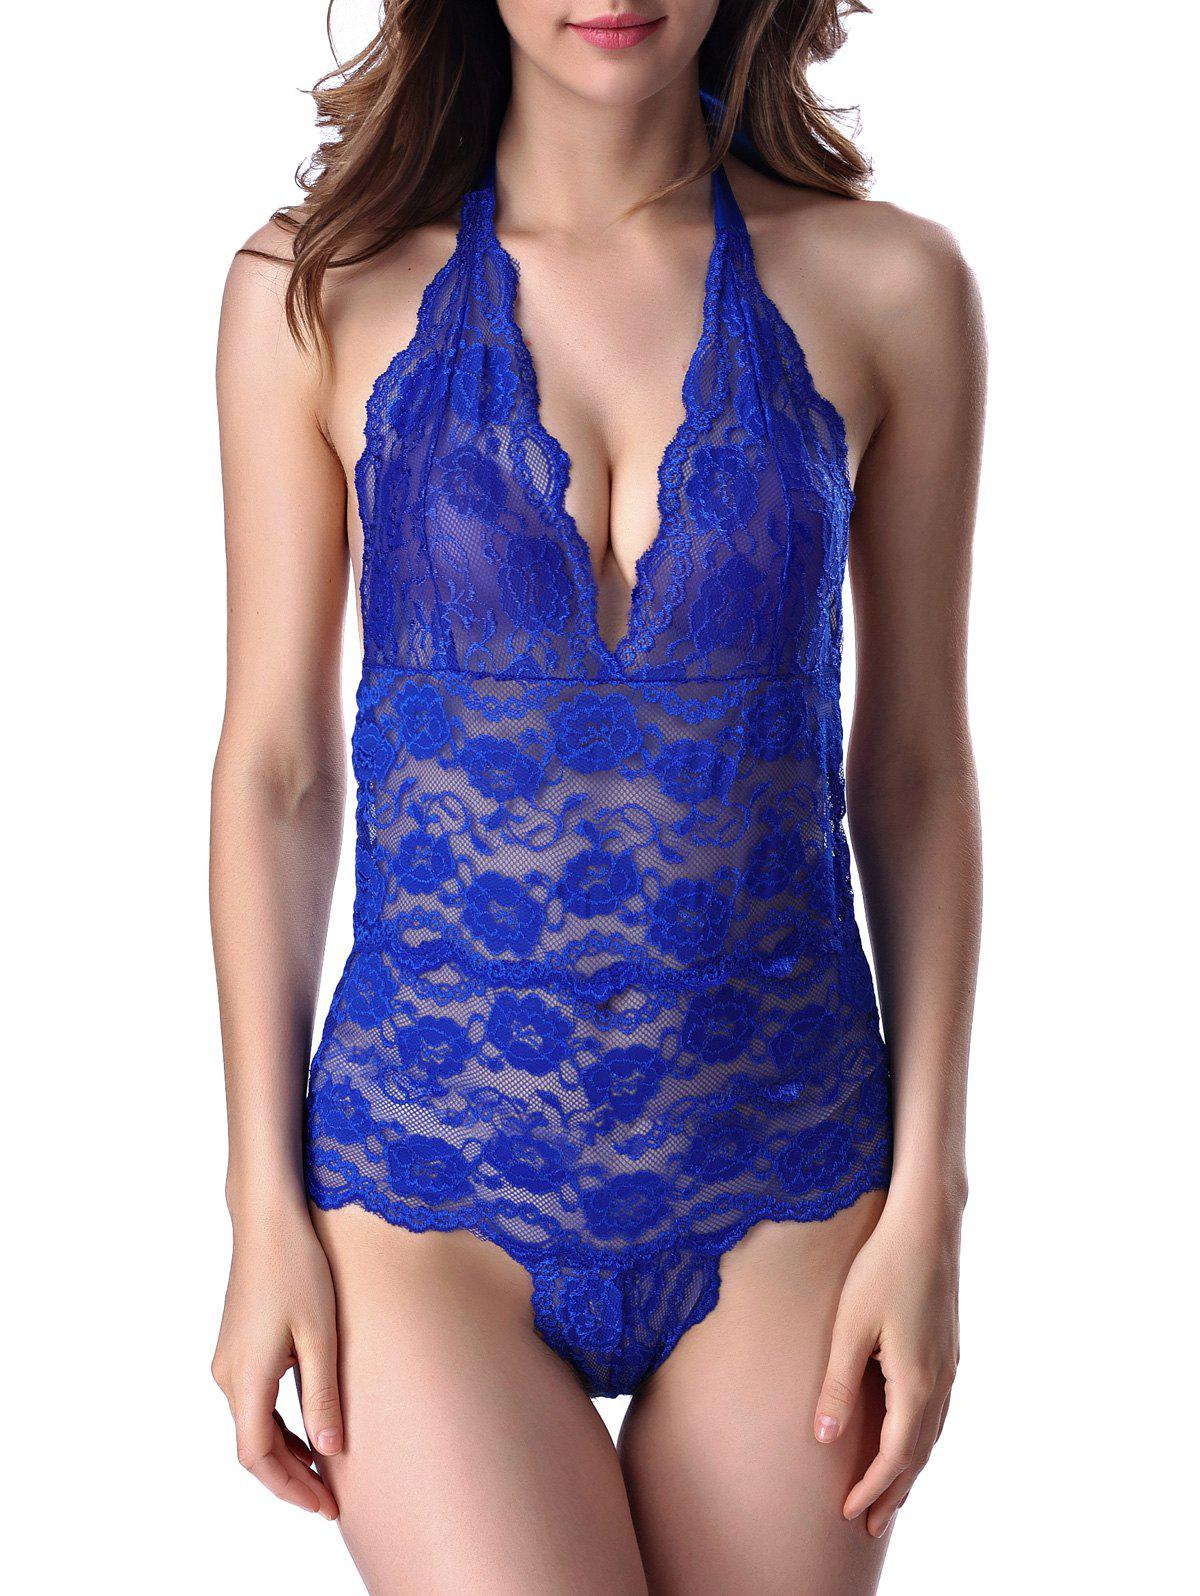 Halter Open Back Lace Teddy - BLUE S